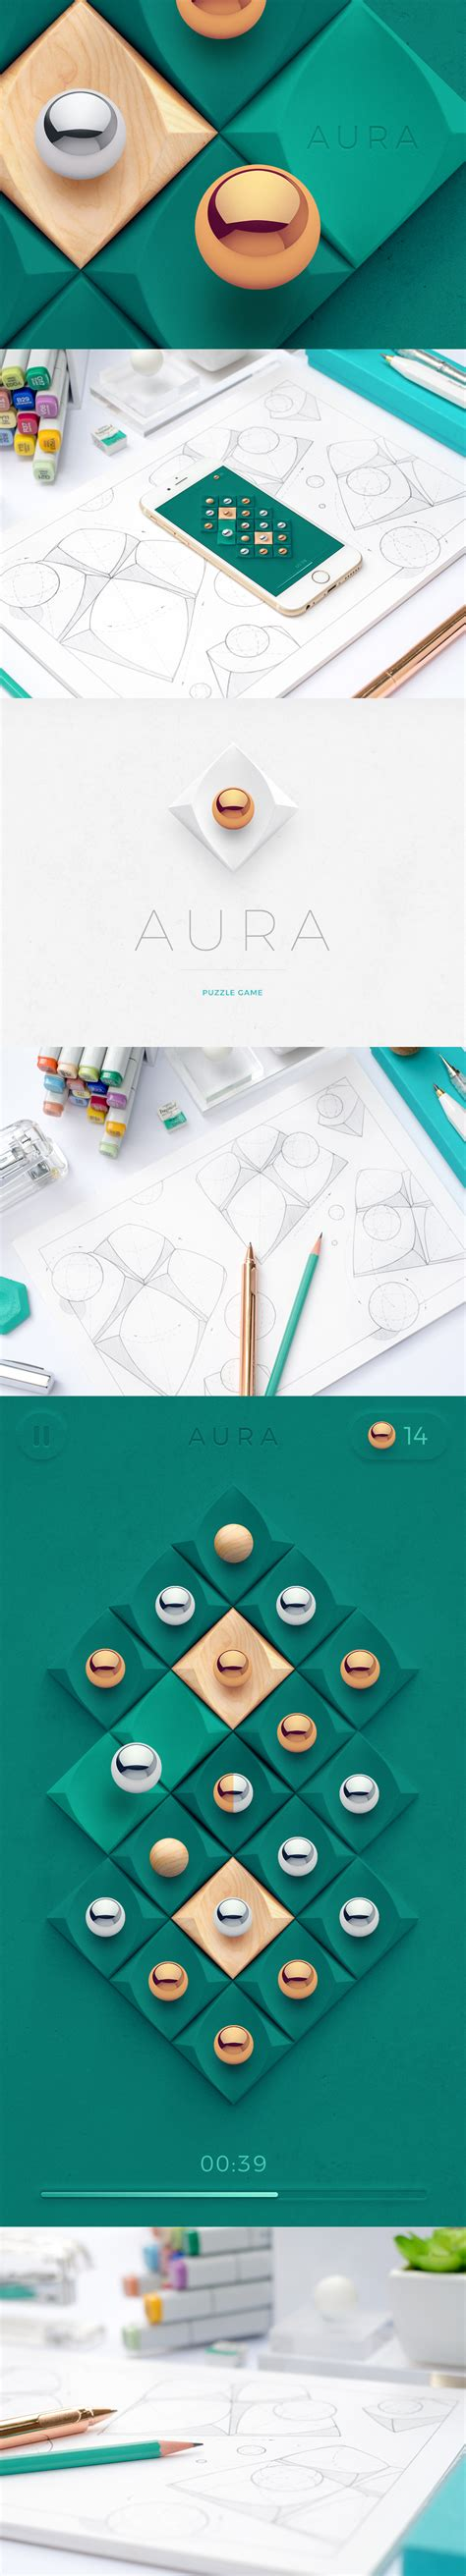 design game ios ios games part 5 on behance